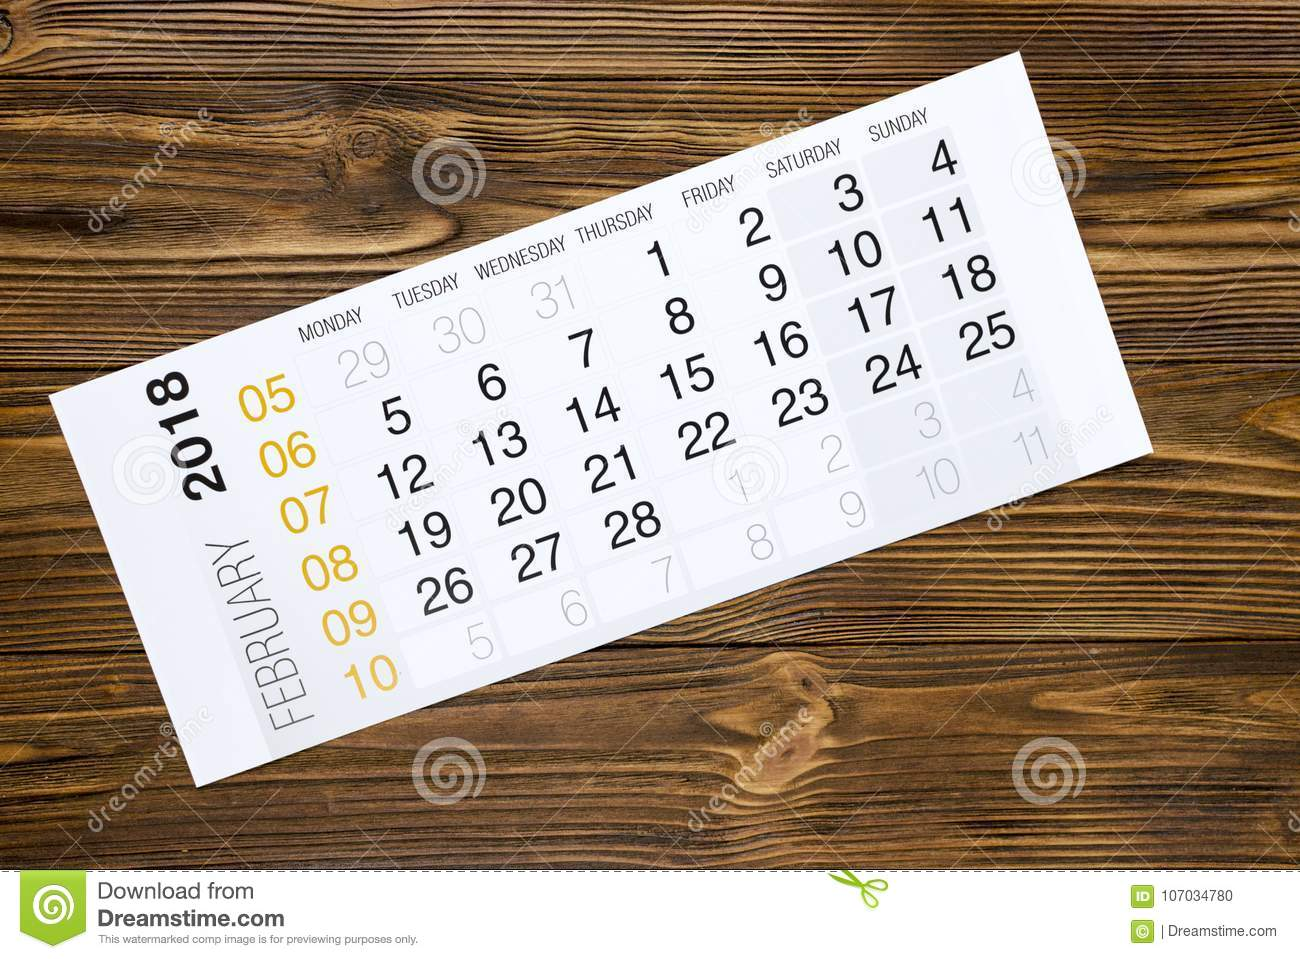 february 2018 calendar on wooden table